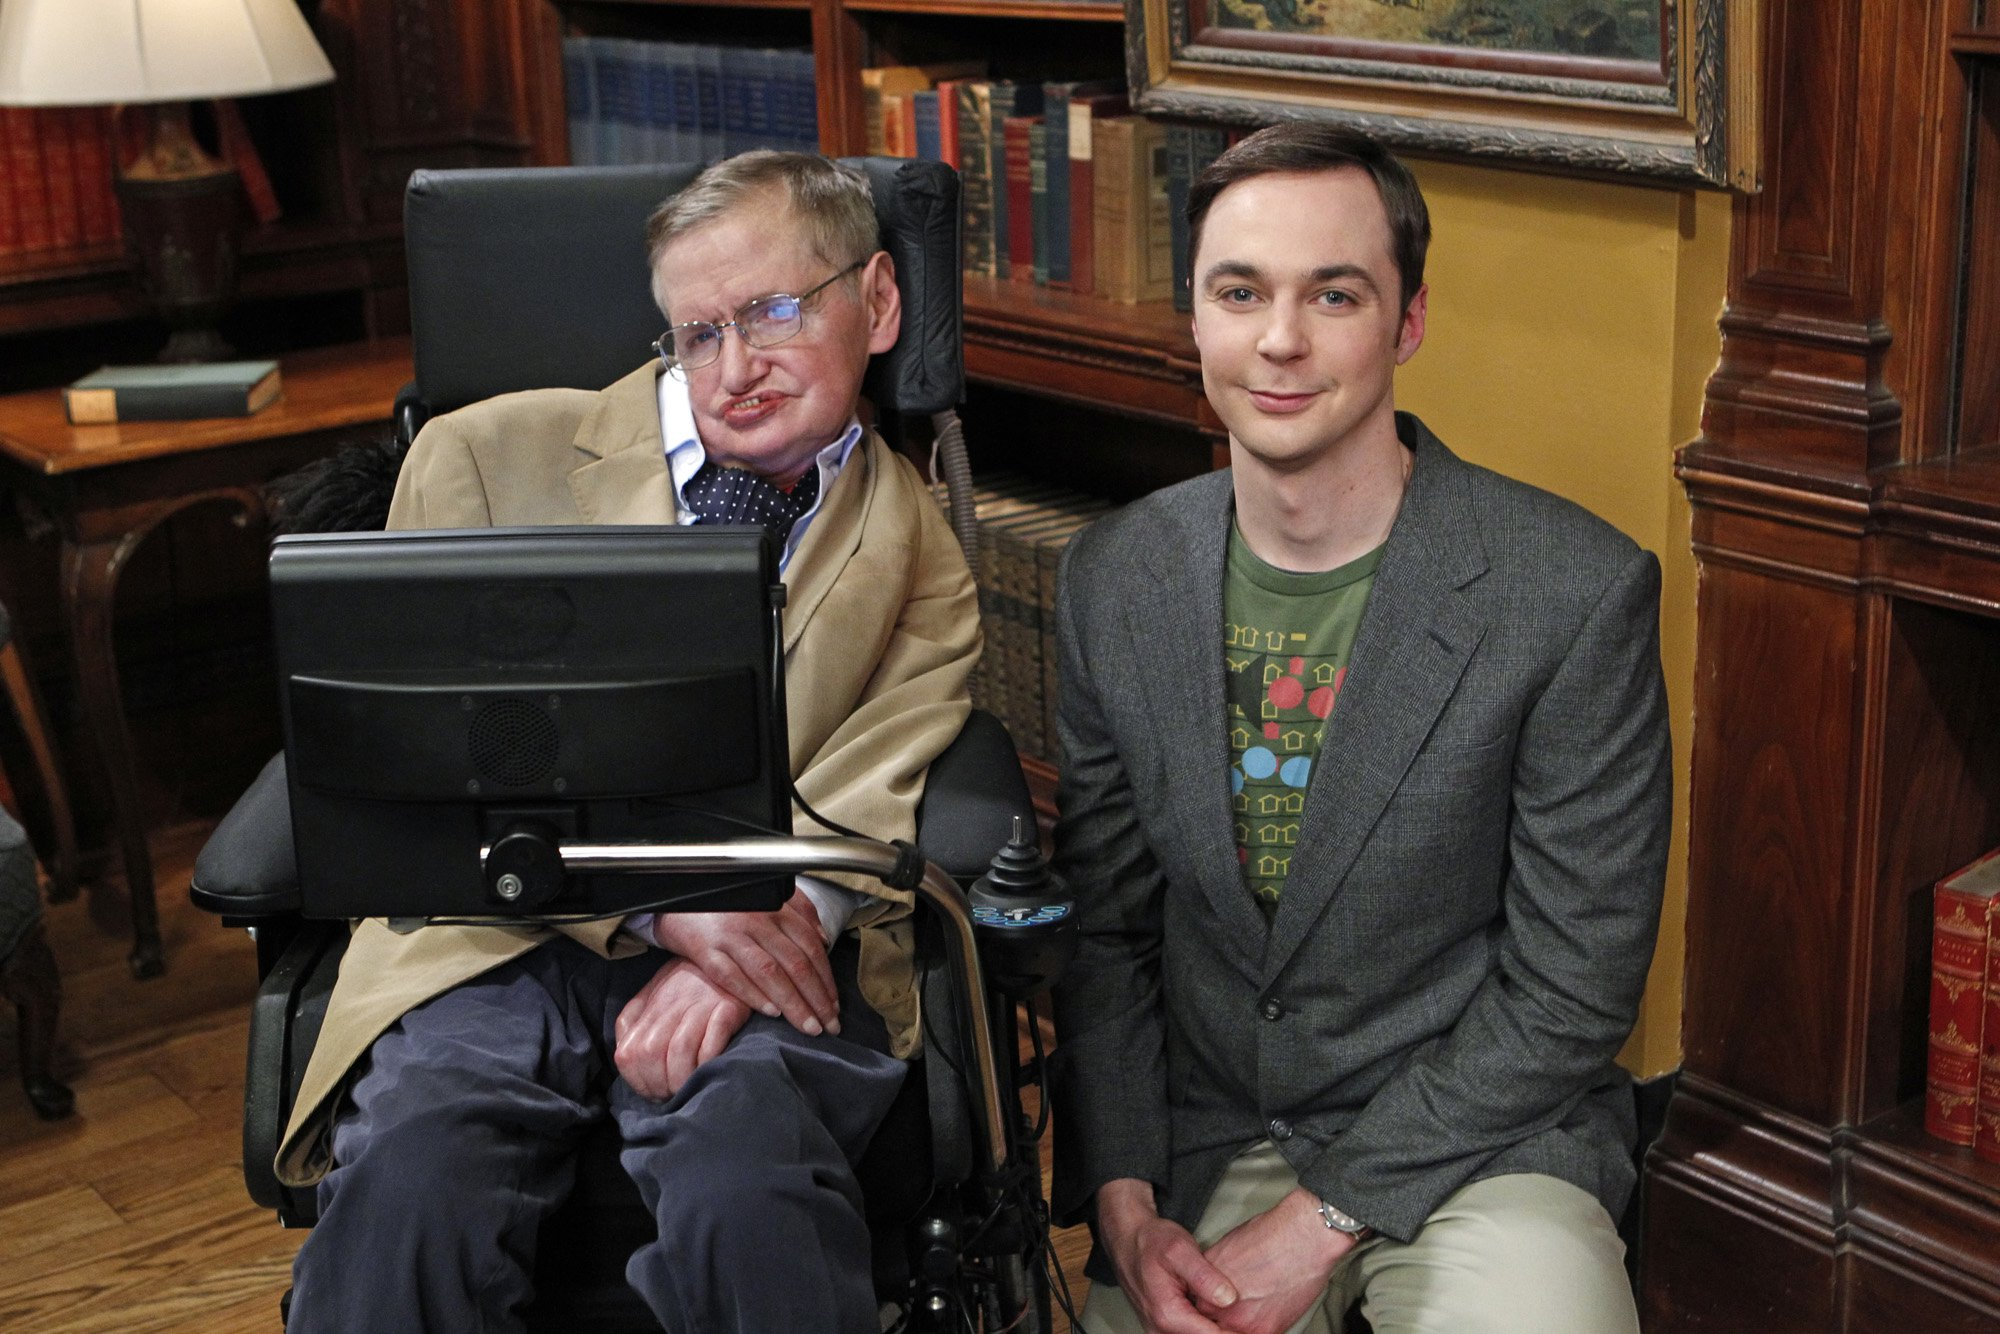 BBC and E4 reveal schedule changes – including The Big Bang Theory in the wake of Stephen Hawking's death